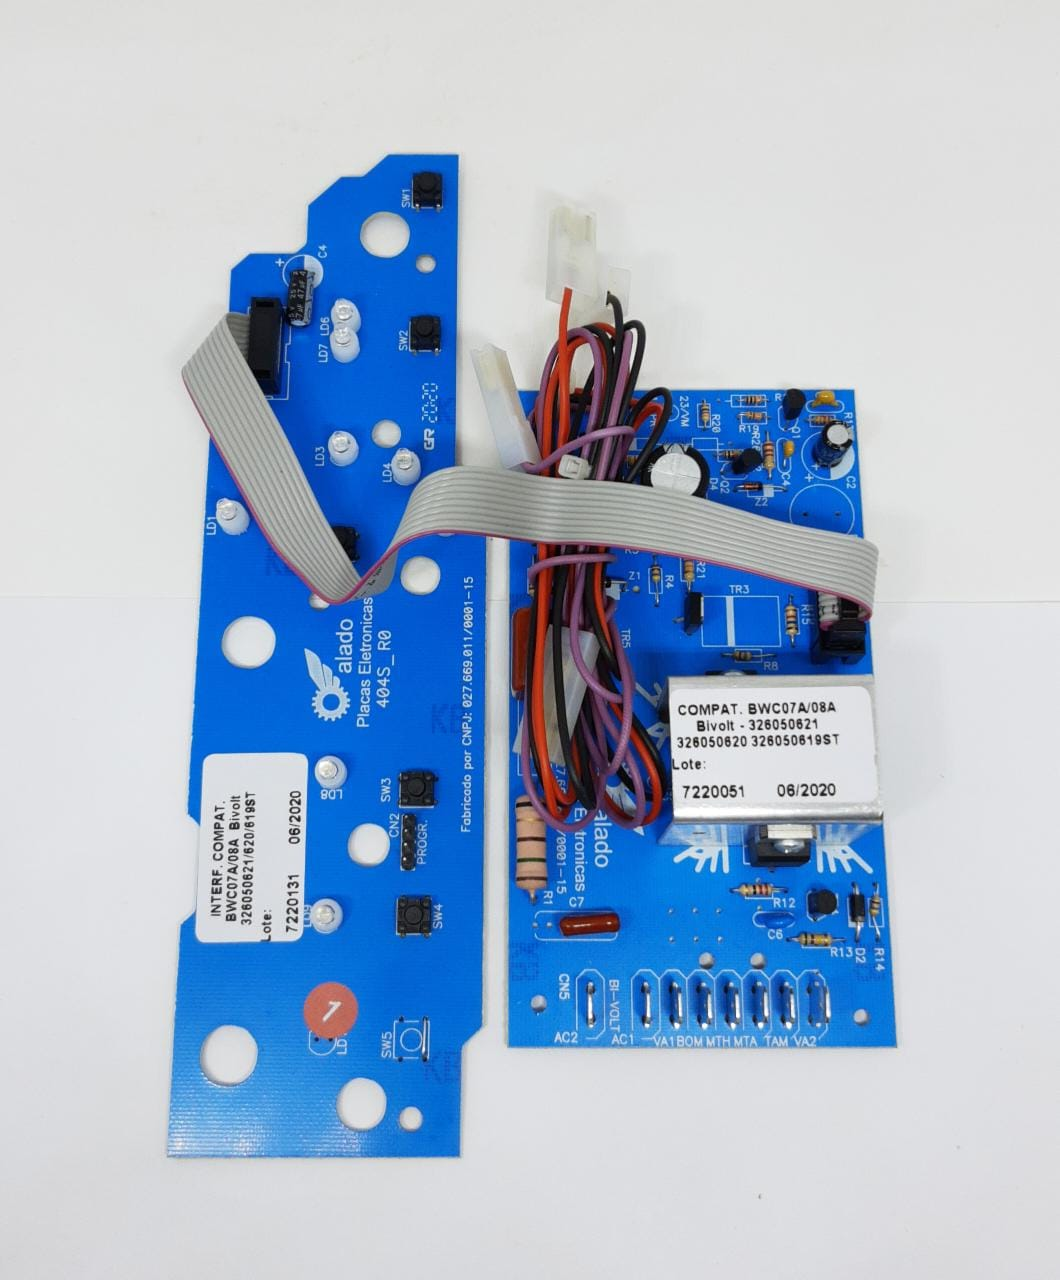 Kit Placa Potencia + Interface Bwc07a Bwc08a 326050621 326050620 626050619 - Alado